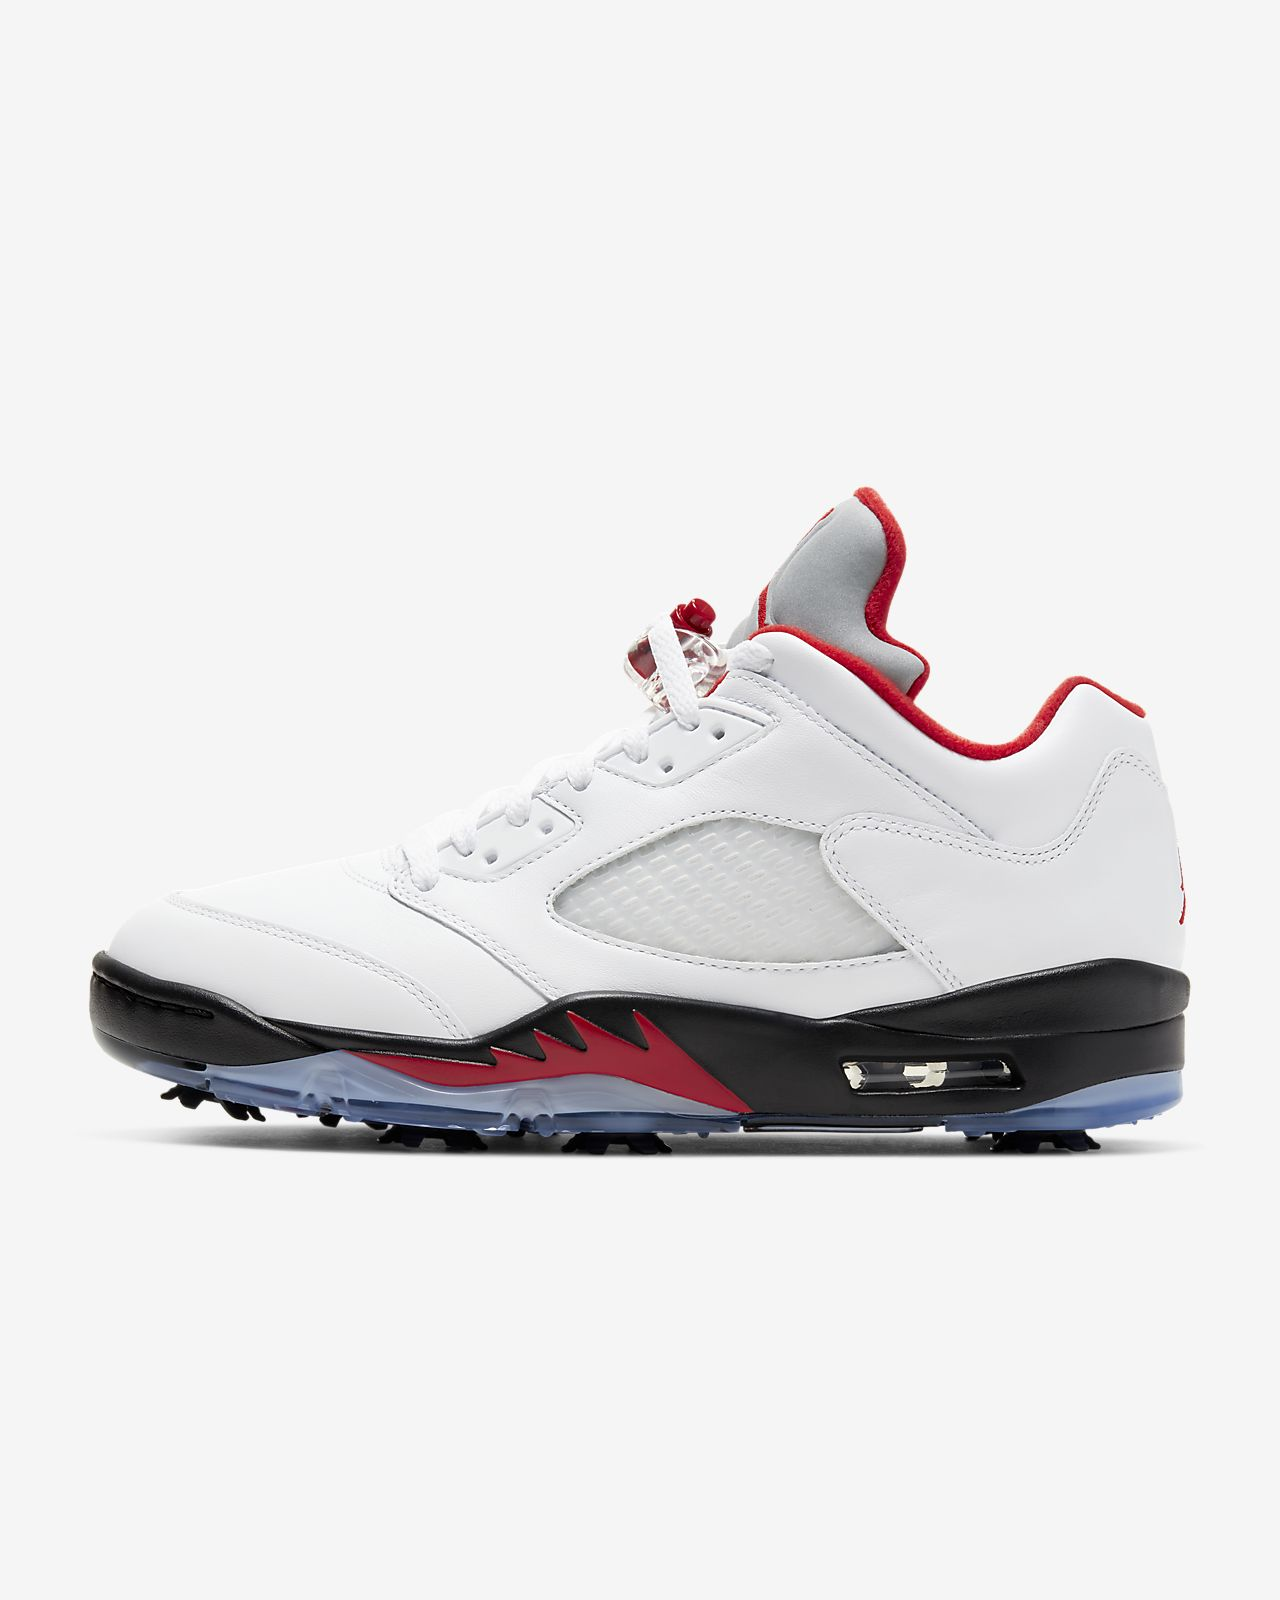 Air Jordan V Low Golf Shoe